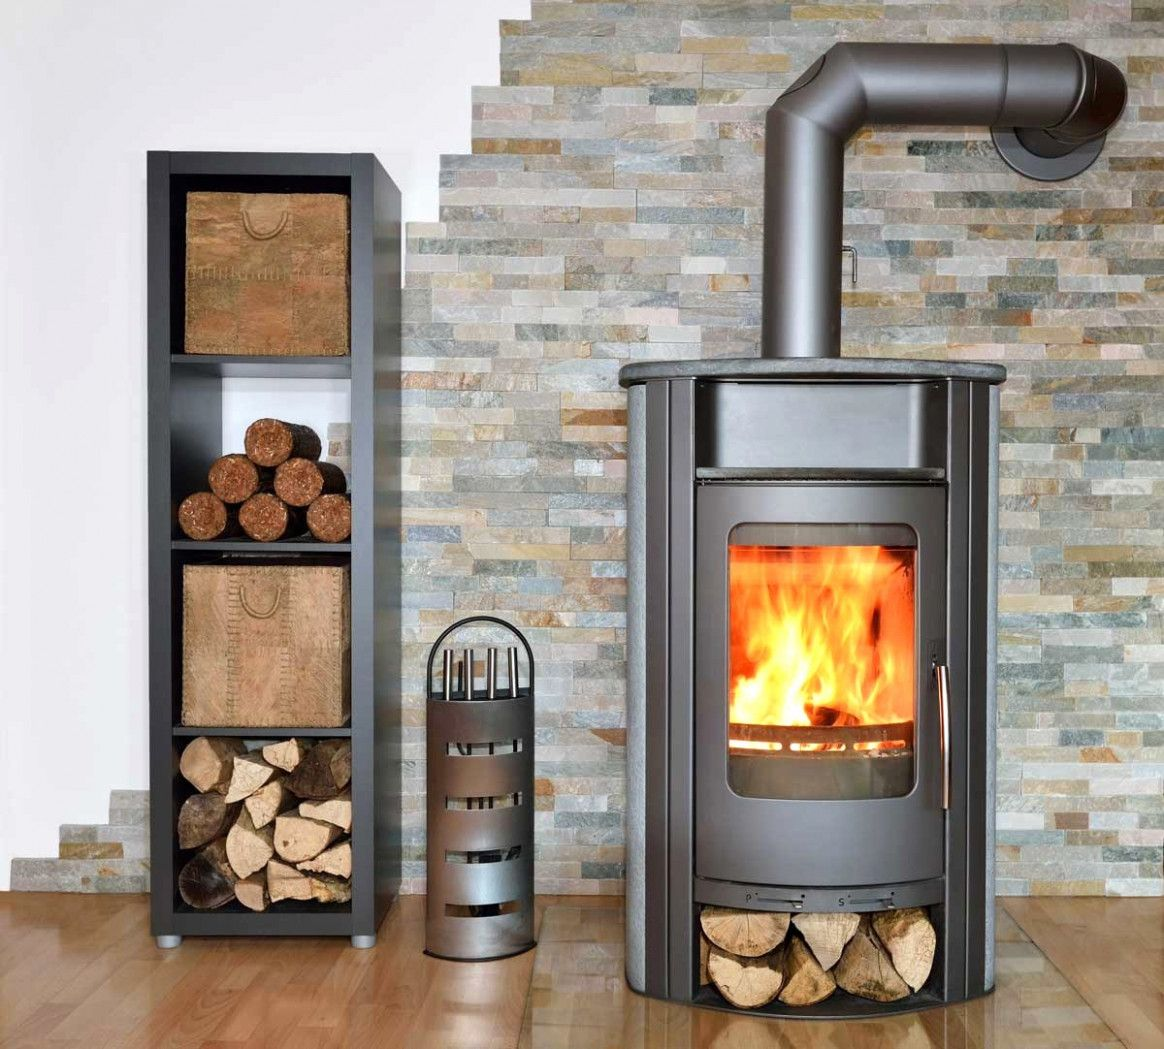 Regal Brennholz Wohnzimmer Most Efficient Wood Stove Wood Stove Freestanding Fireplace